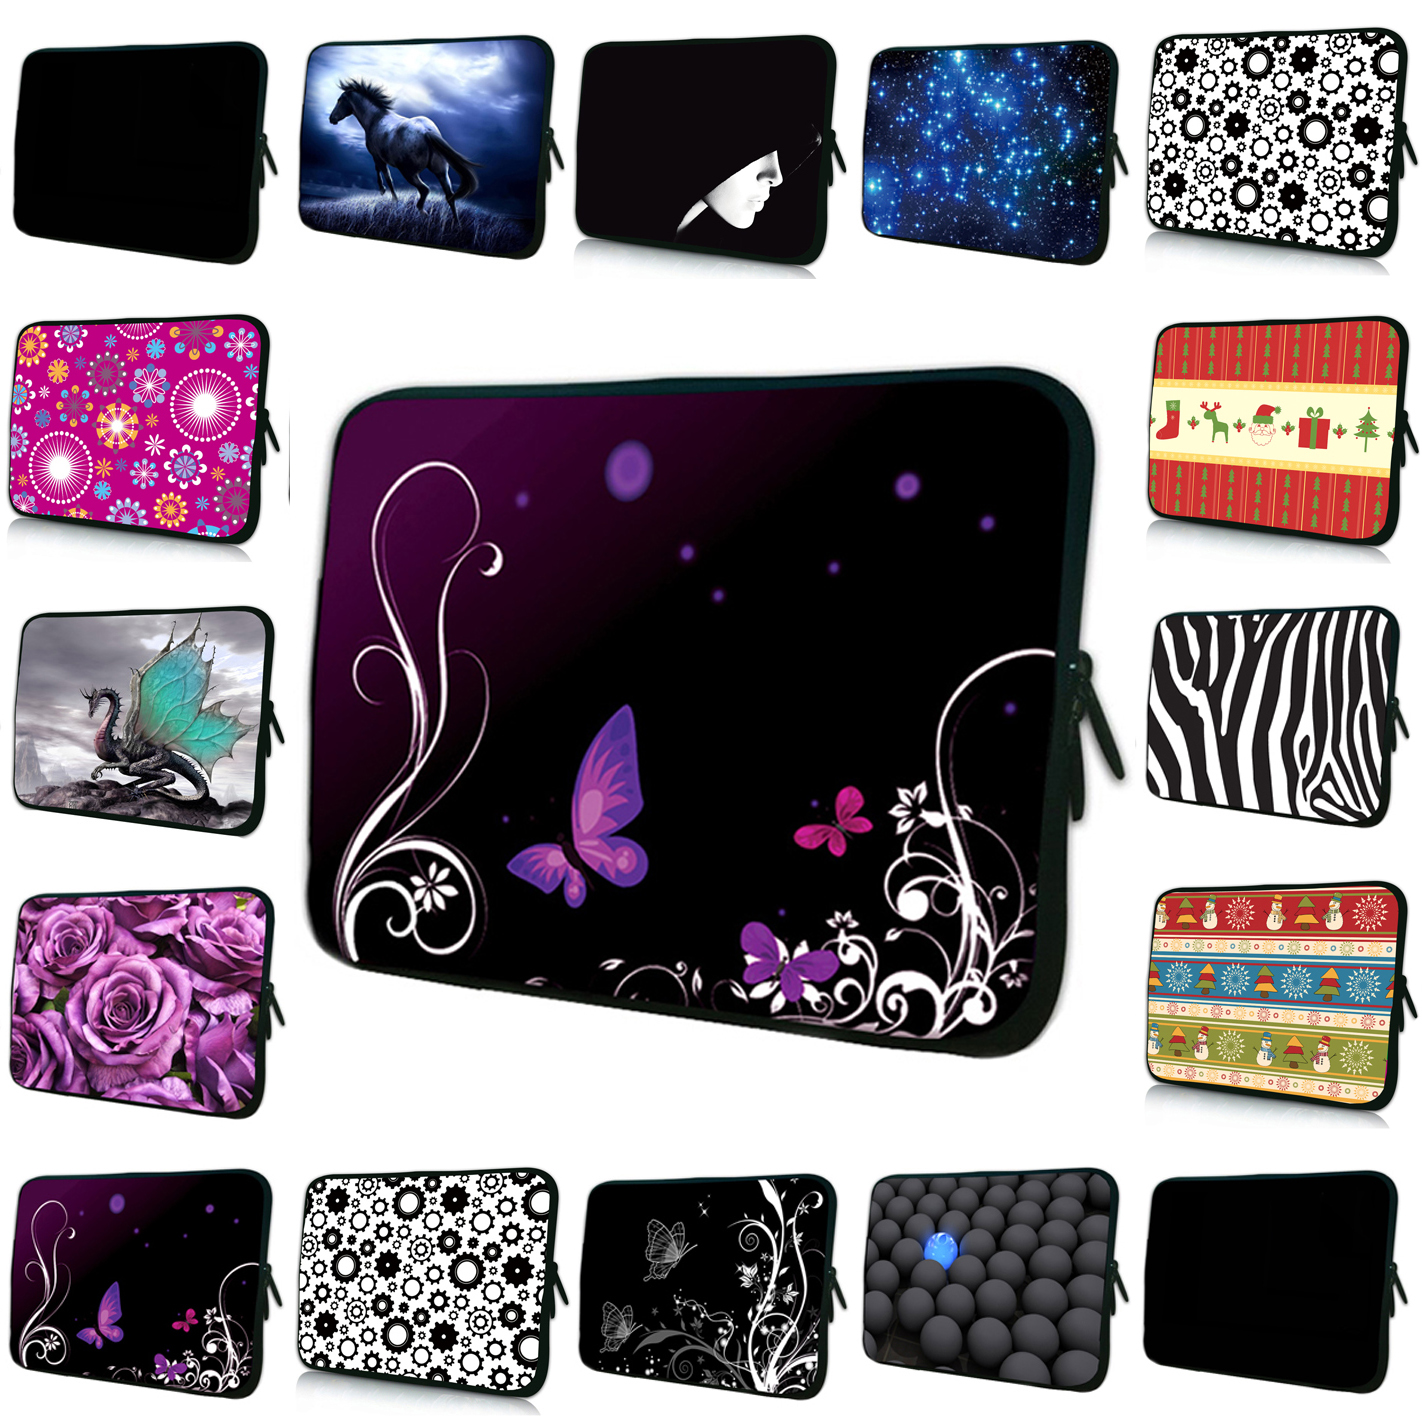 Unisex Sleeve Bag15 14 17 10 7 13 12 inch Tablet Laptop Device Ultra-Thin Bag Cases For 15.6 Dell Asus/15.5 Sony Vaio E Seriesse